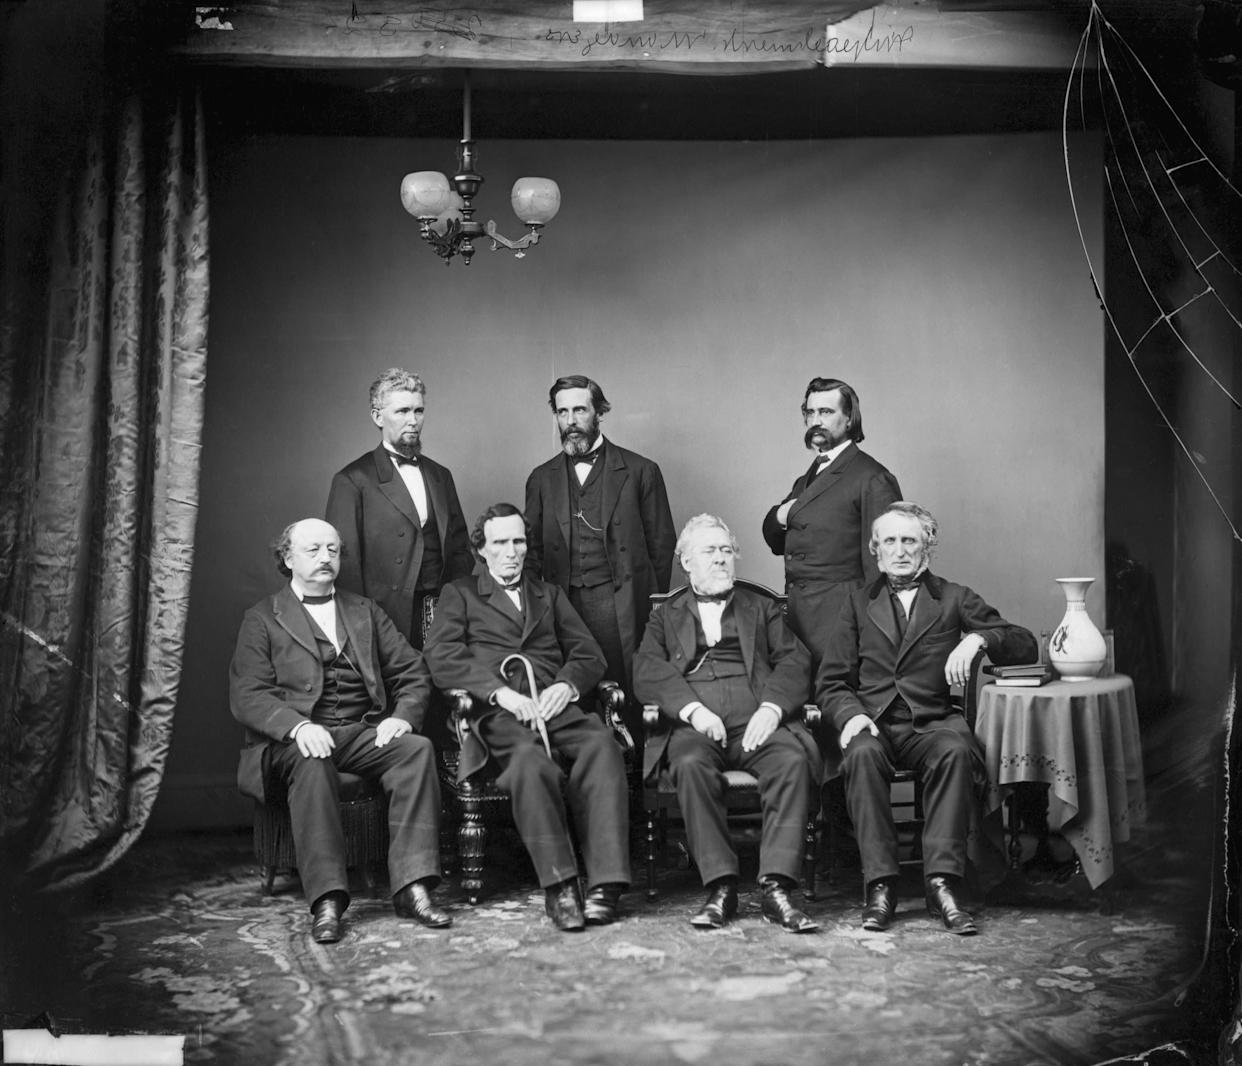 Mathew Brady studio portrait of the House of Representatives impeachment committee of President Andrew Johnson in 1868. Standing from left are James F. Wilson, George S. Boutwell and John A. Logan. Seated are Benjamin F. Butler, Thaddeus Stevens, Thomas Williams and John A. Bingham.